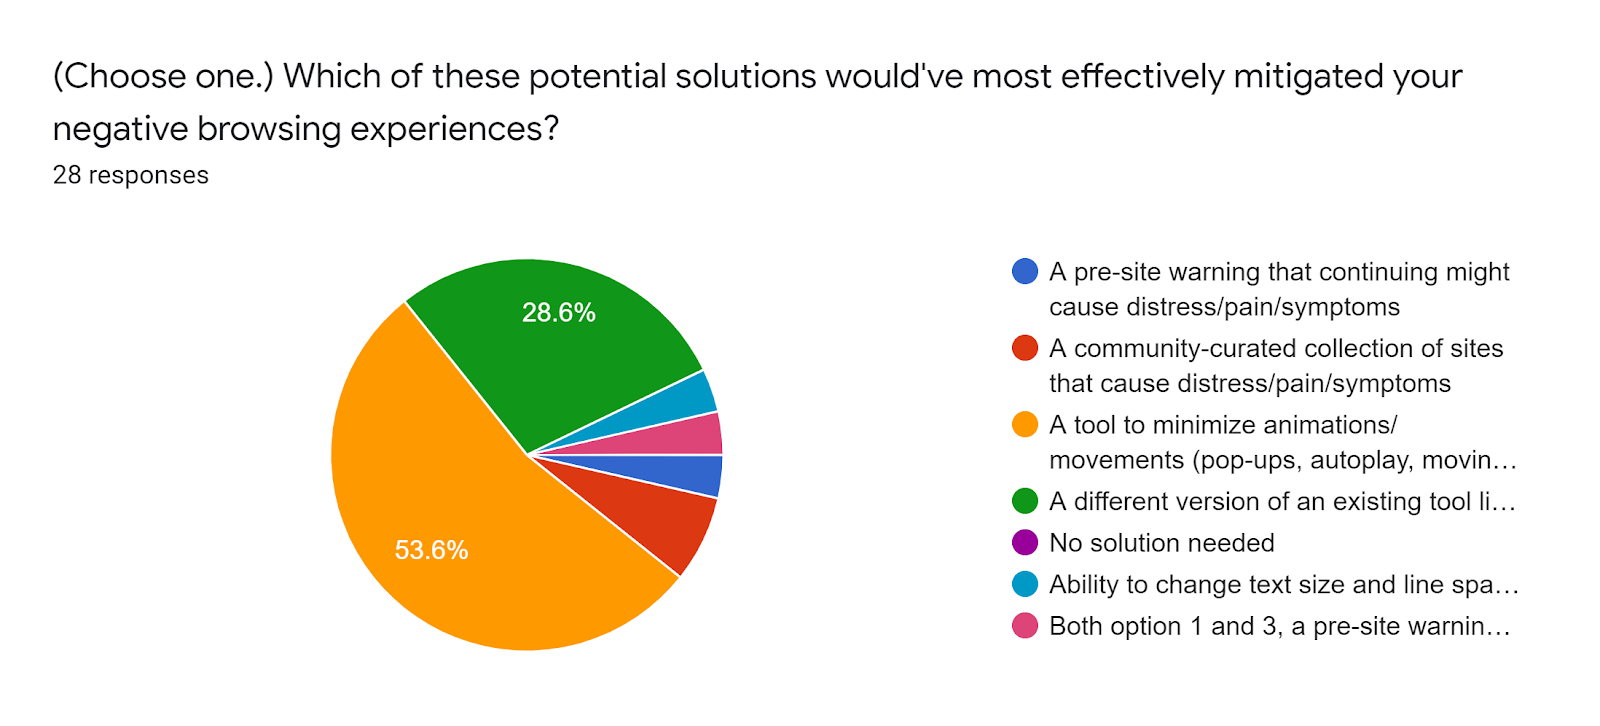 Forms response chart. Question title: (Choose one.) Which of these potential solutions would've most effectively mitigated your negative browsing experiences?. Number of responses: 28 responses.